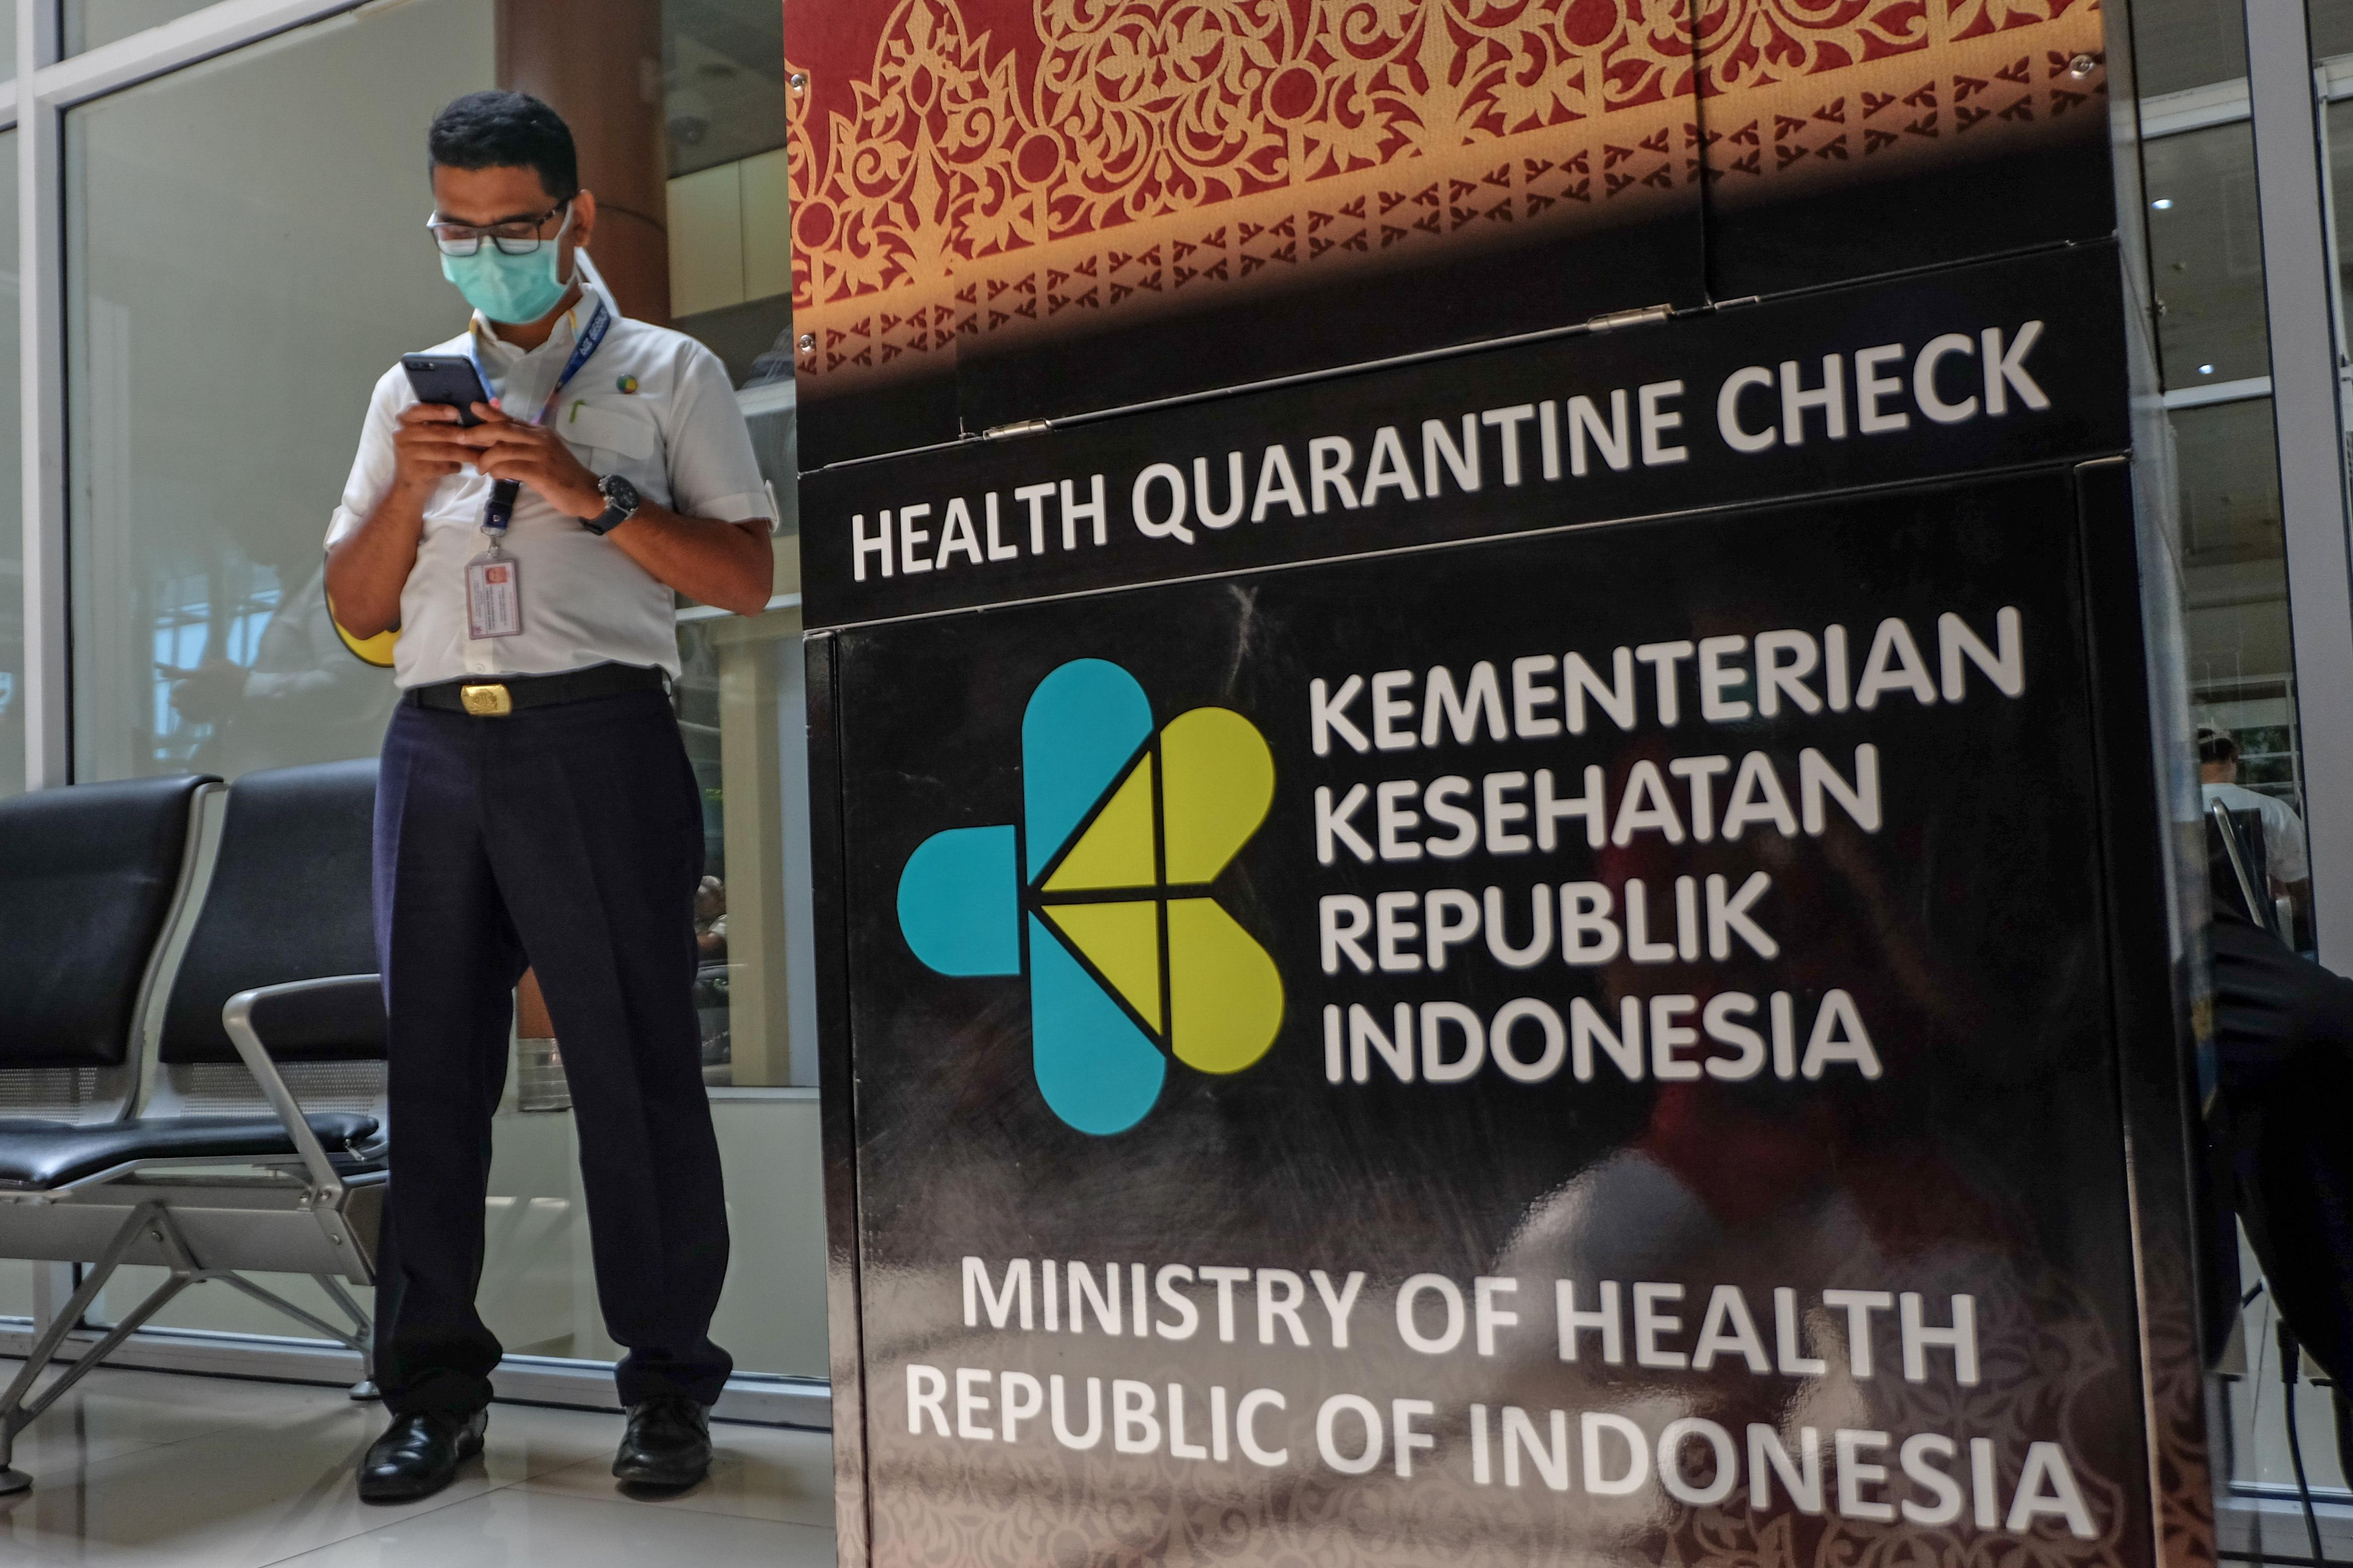 PEKANBARU, RIAU, INDONESIA - JANUARY 23: Airport operational officers are seen using a face mask to prevent Coronavirus at Sultan Syarif Kasim II airport in Pekanbaru, Riau Province, Indonesia on January 23, 2020. Coronavirus has killed nine peoples, infected hundreds of peoples and can spread. The new virus originating from Wuhan, China, appeared since December 2019 and has been terrorizing the world. (Photo by Dedy Sutisna/Anadolu Agency via Getty Images)